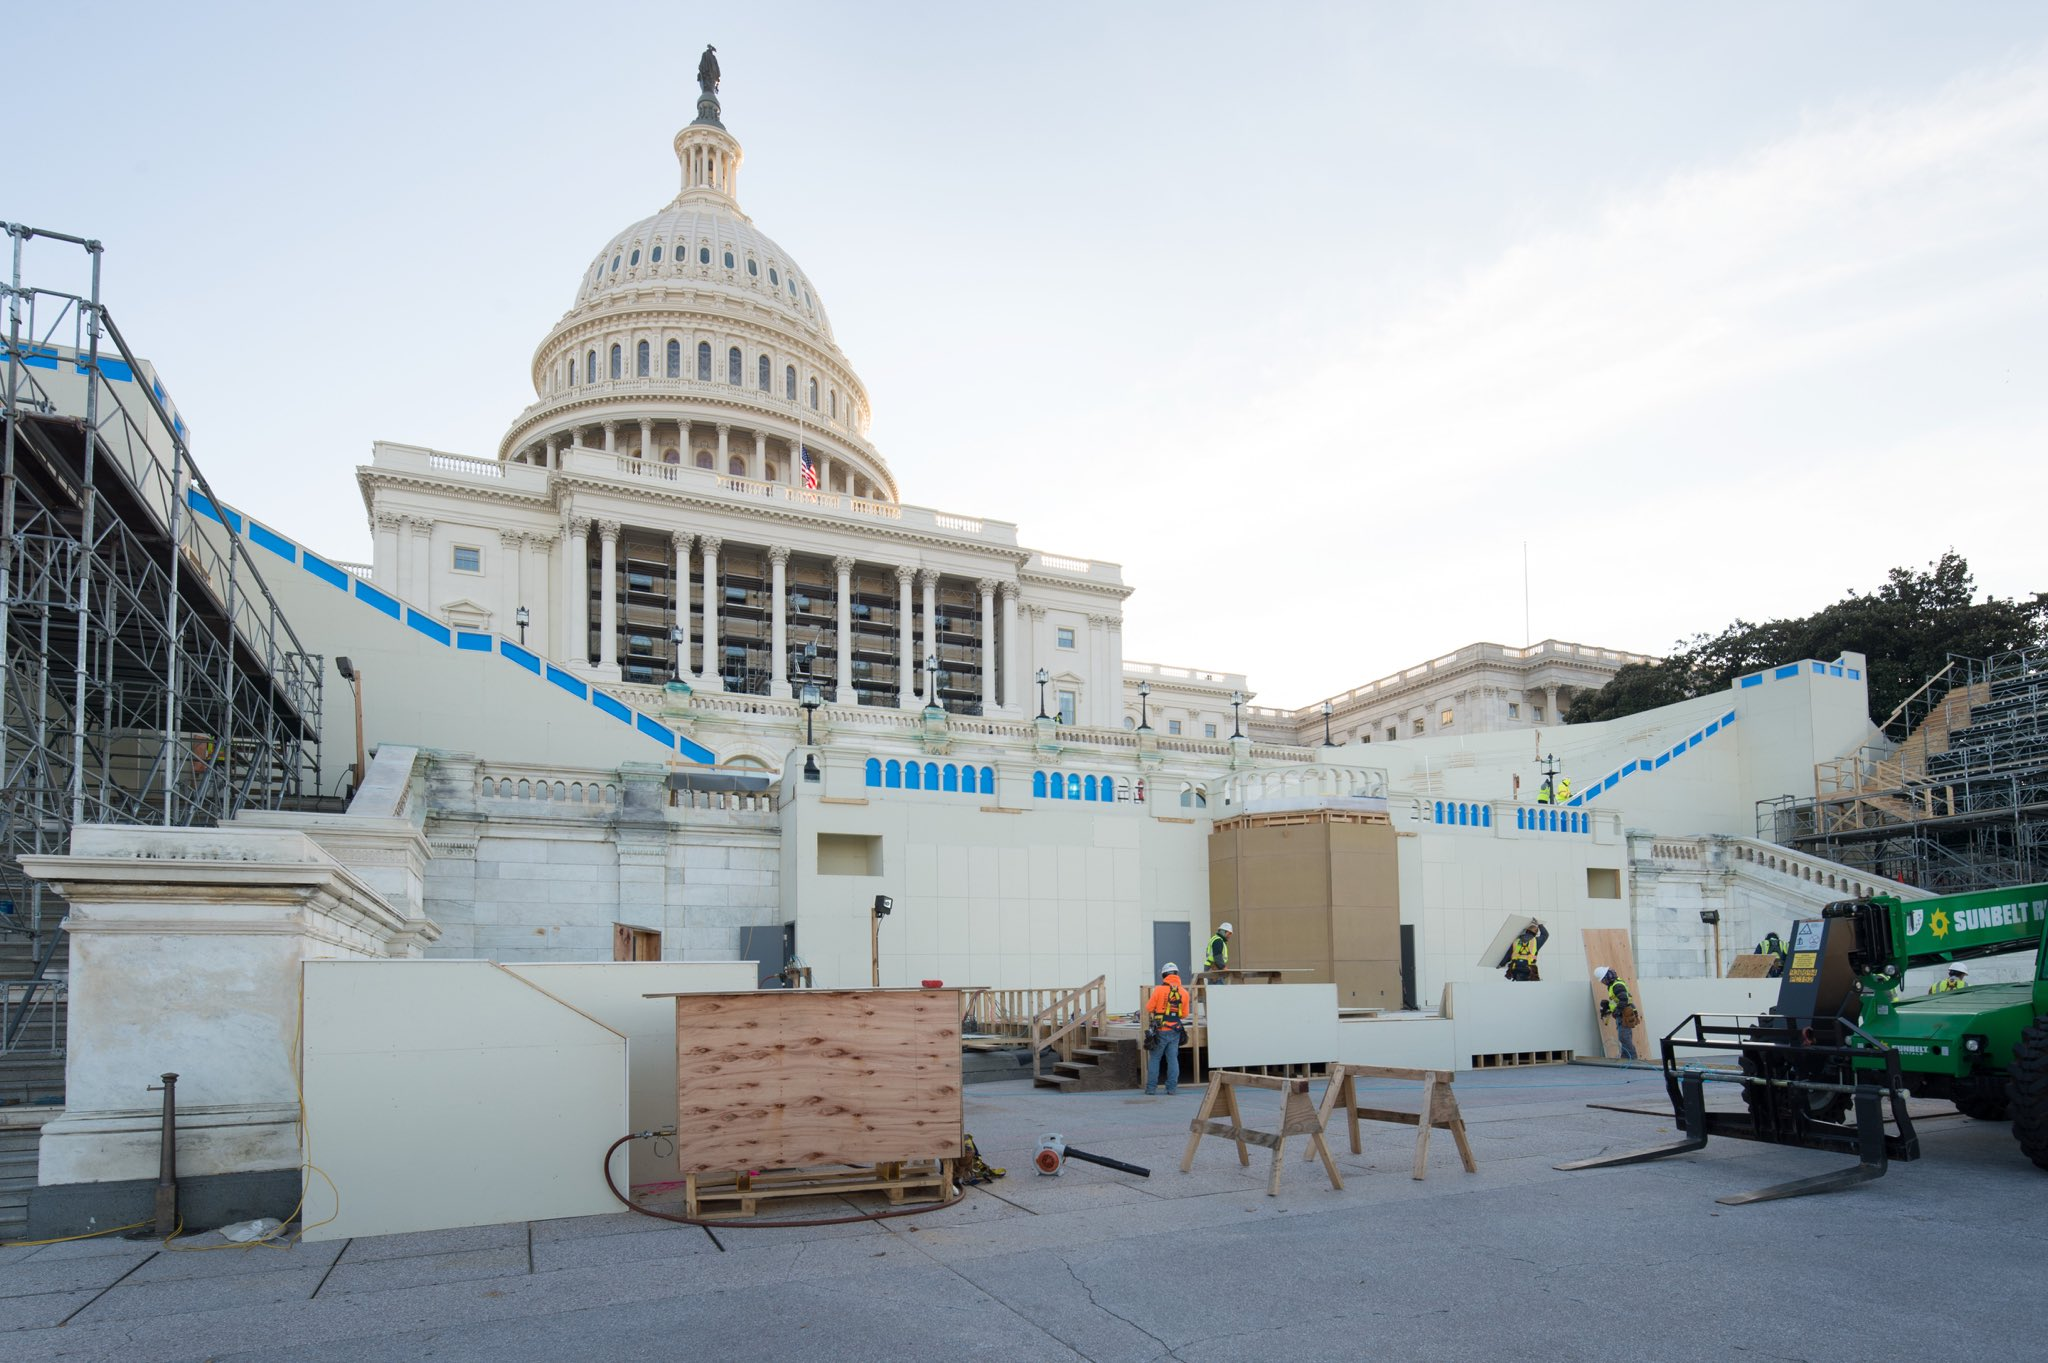 Construction continues on the 58th Presidential Inaugural Platform! #WestFrontWednesday #inauguration2017 #January20th https://t.co/z6JEOi0w32